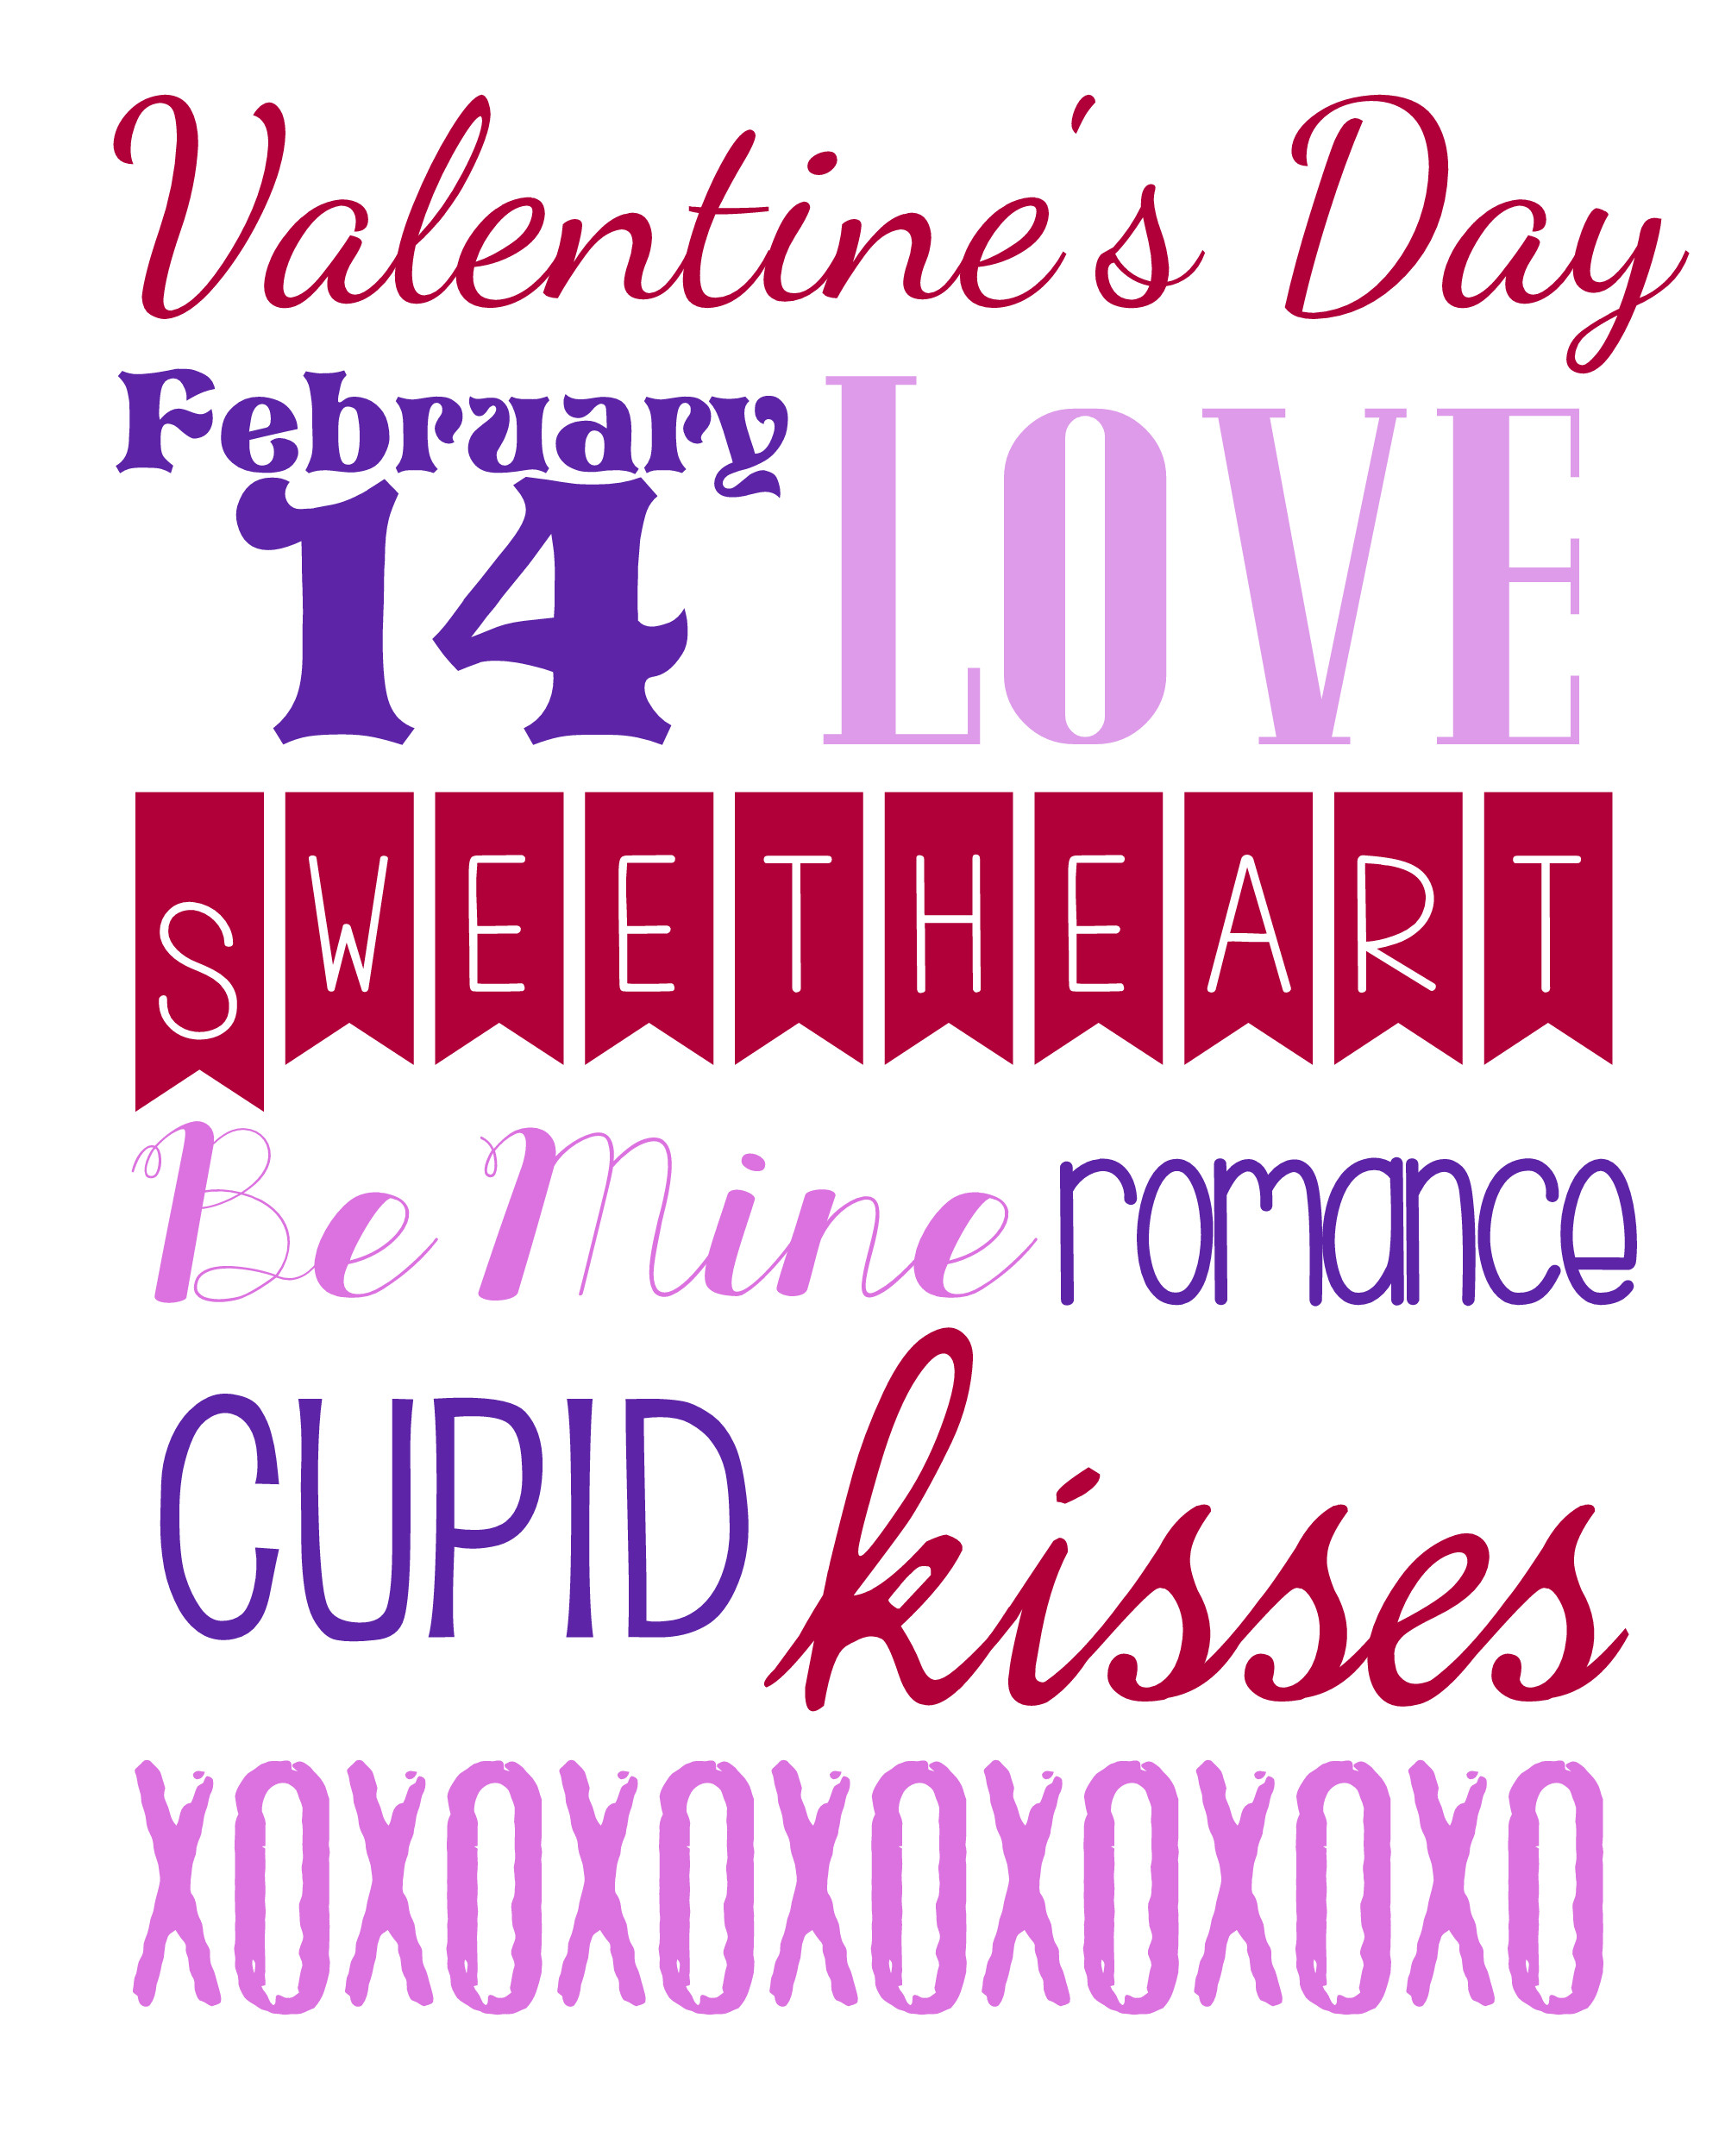 valentine's day printable, #valentinesday, #printable, #subwayart, #freeprintable, #thriftydecor, #thriftyvalentinesday